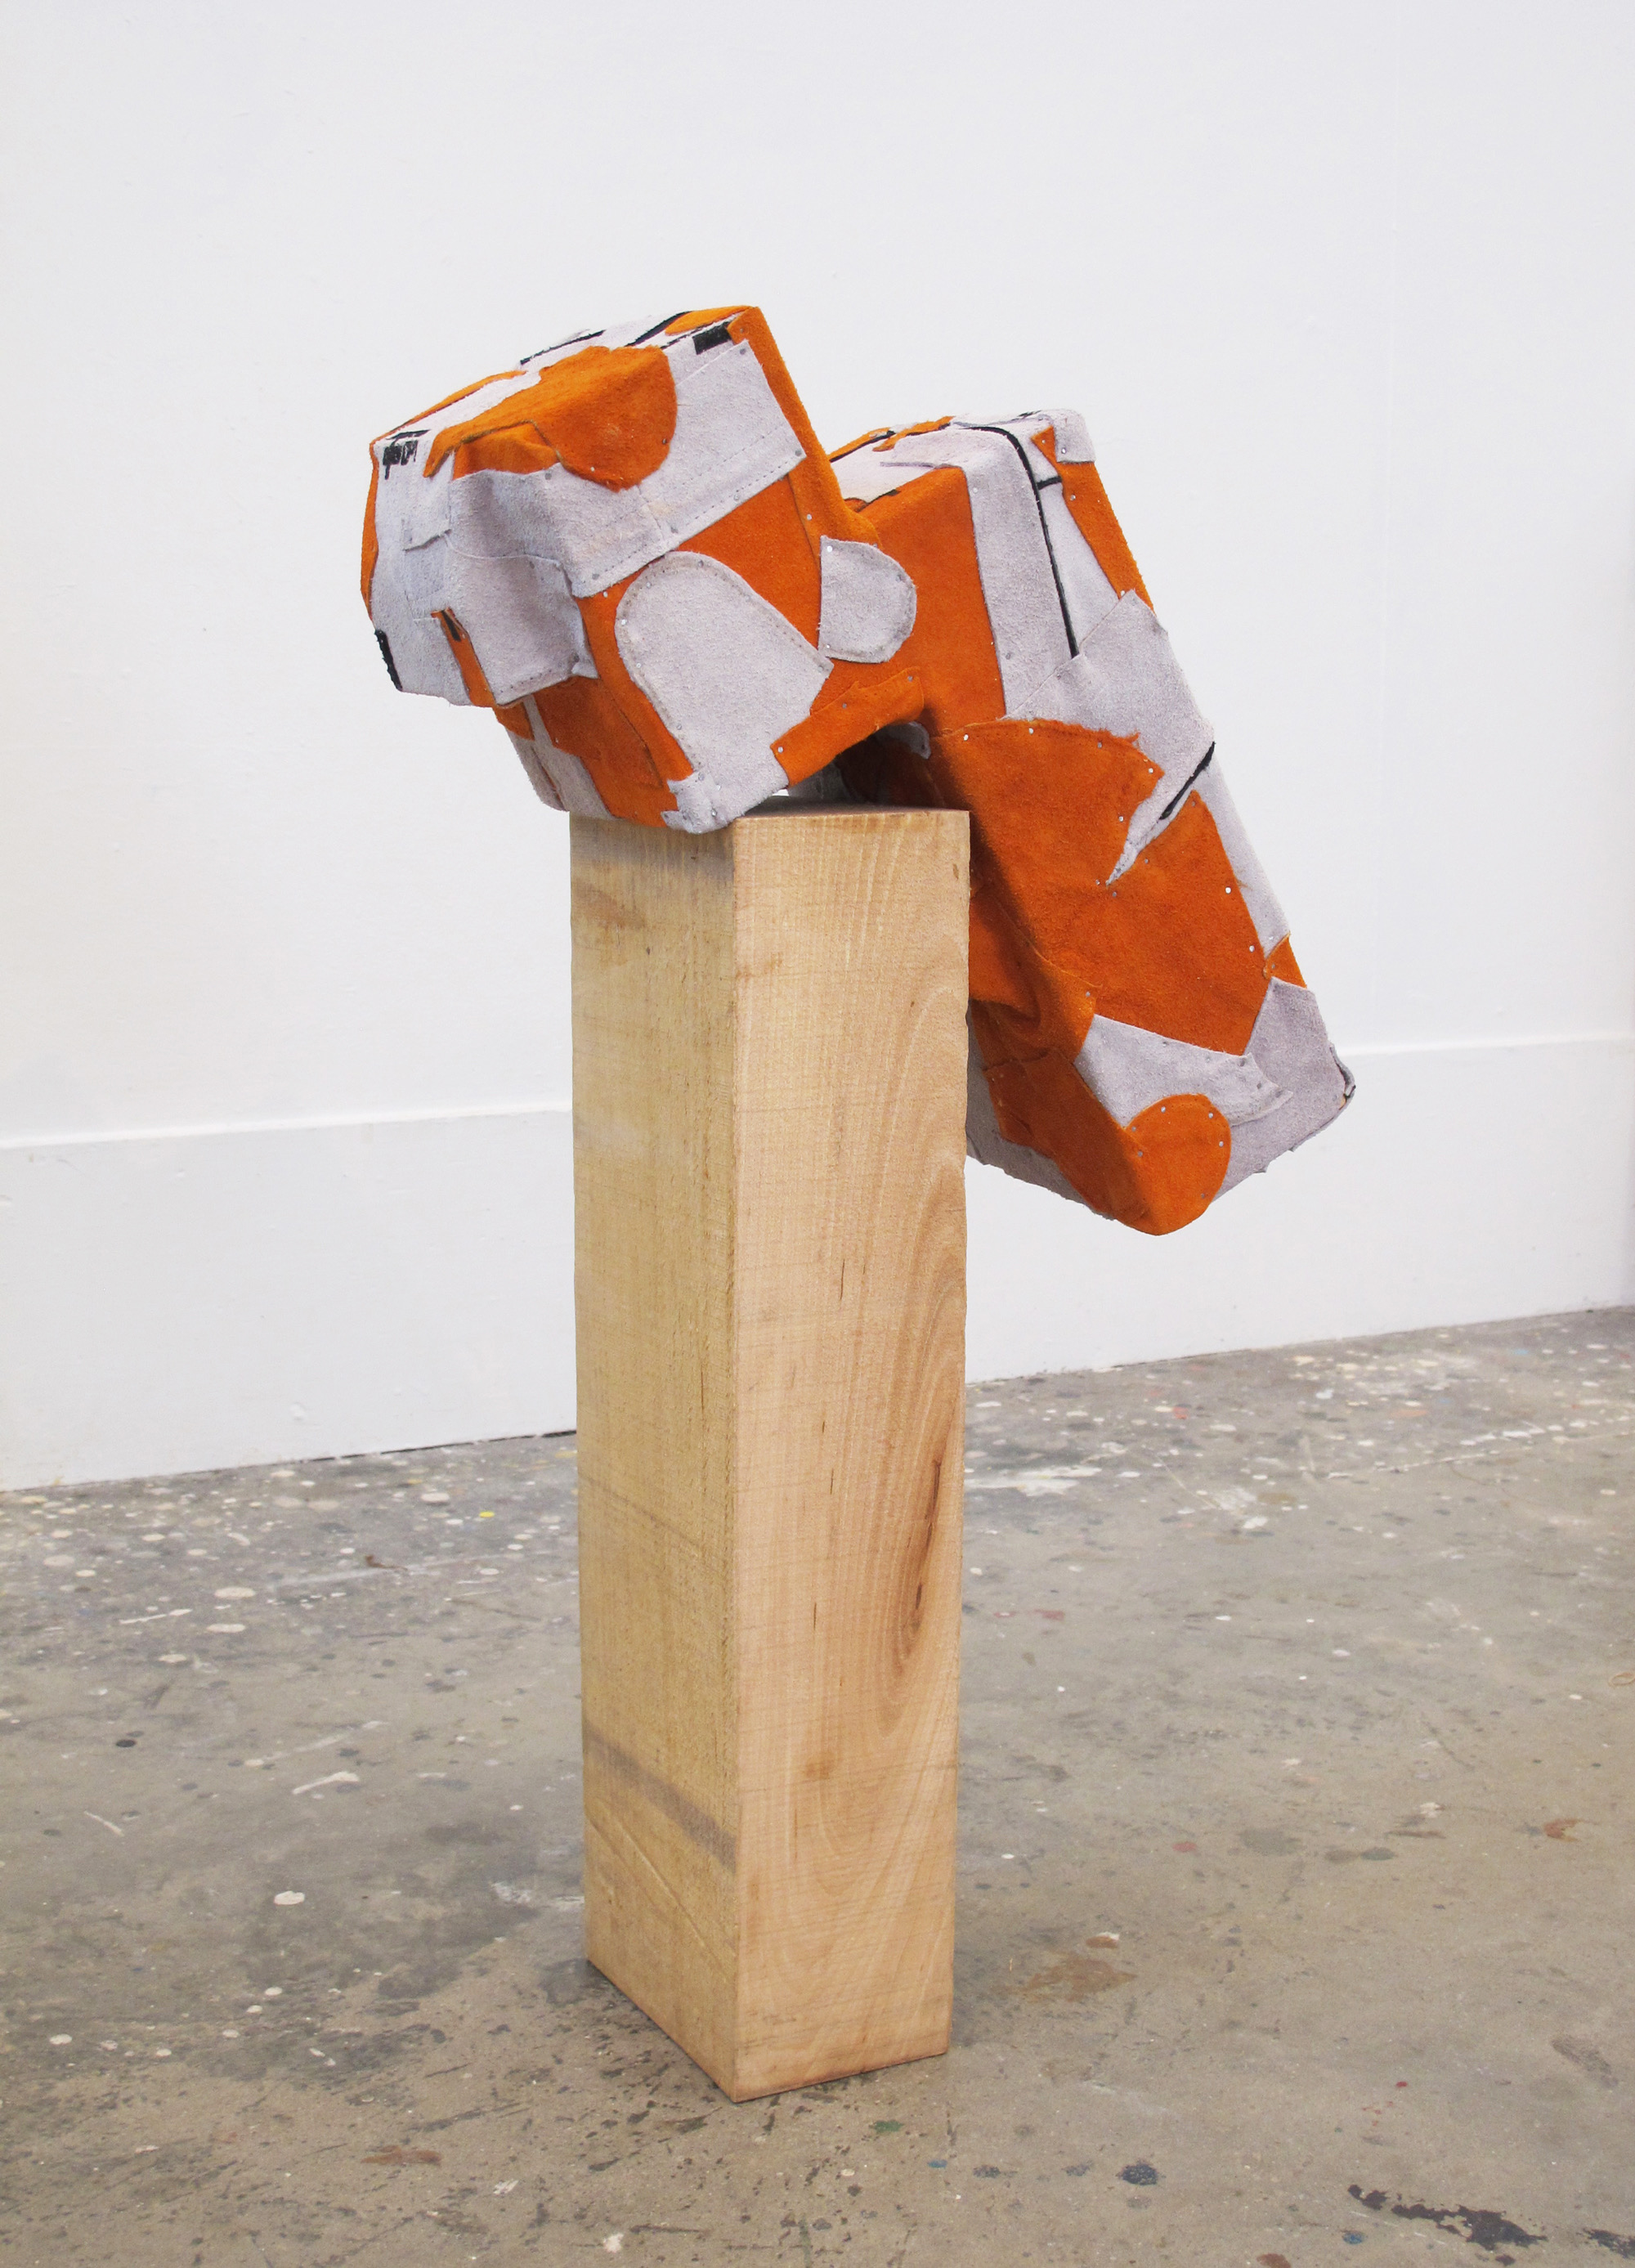 Untitled, 2012, wood, nails, fabric, dimensions variable